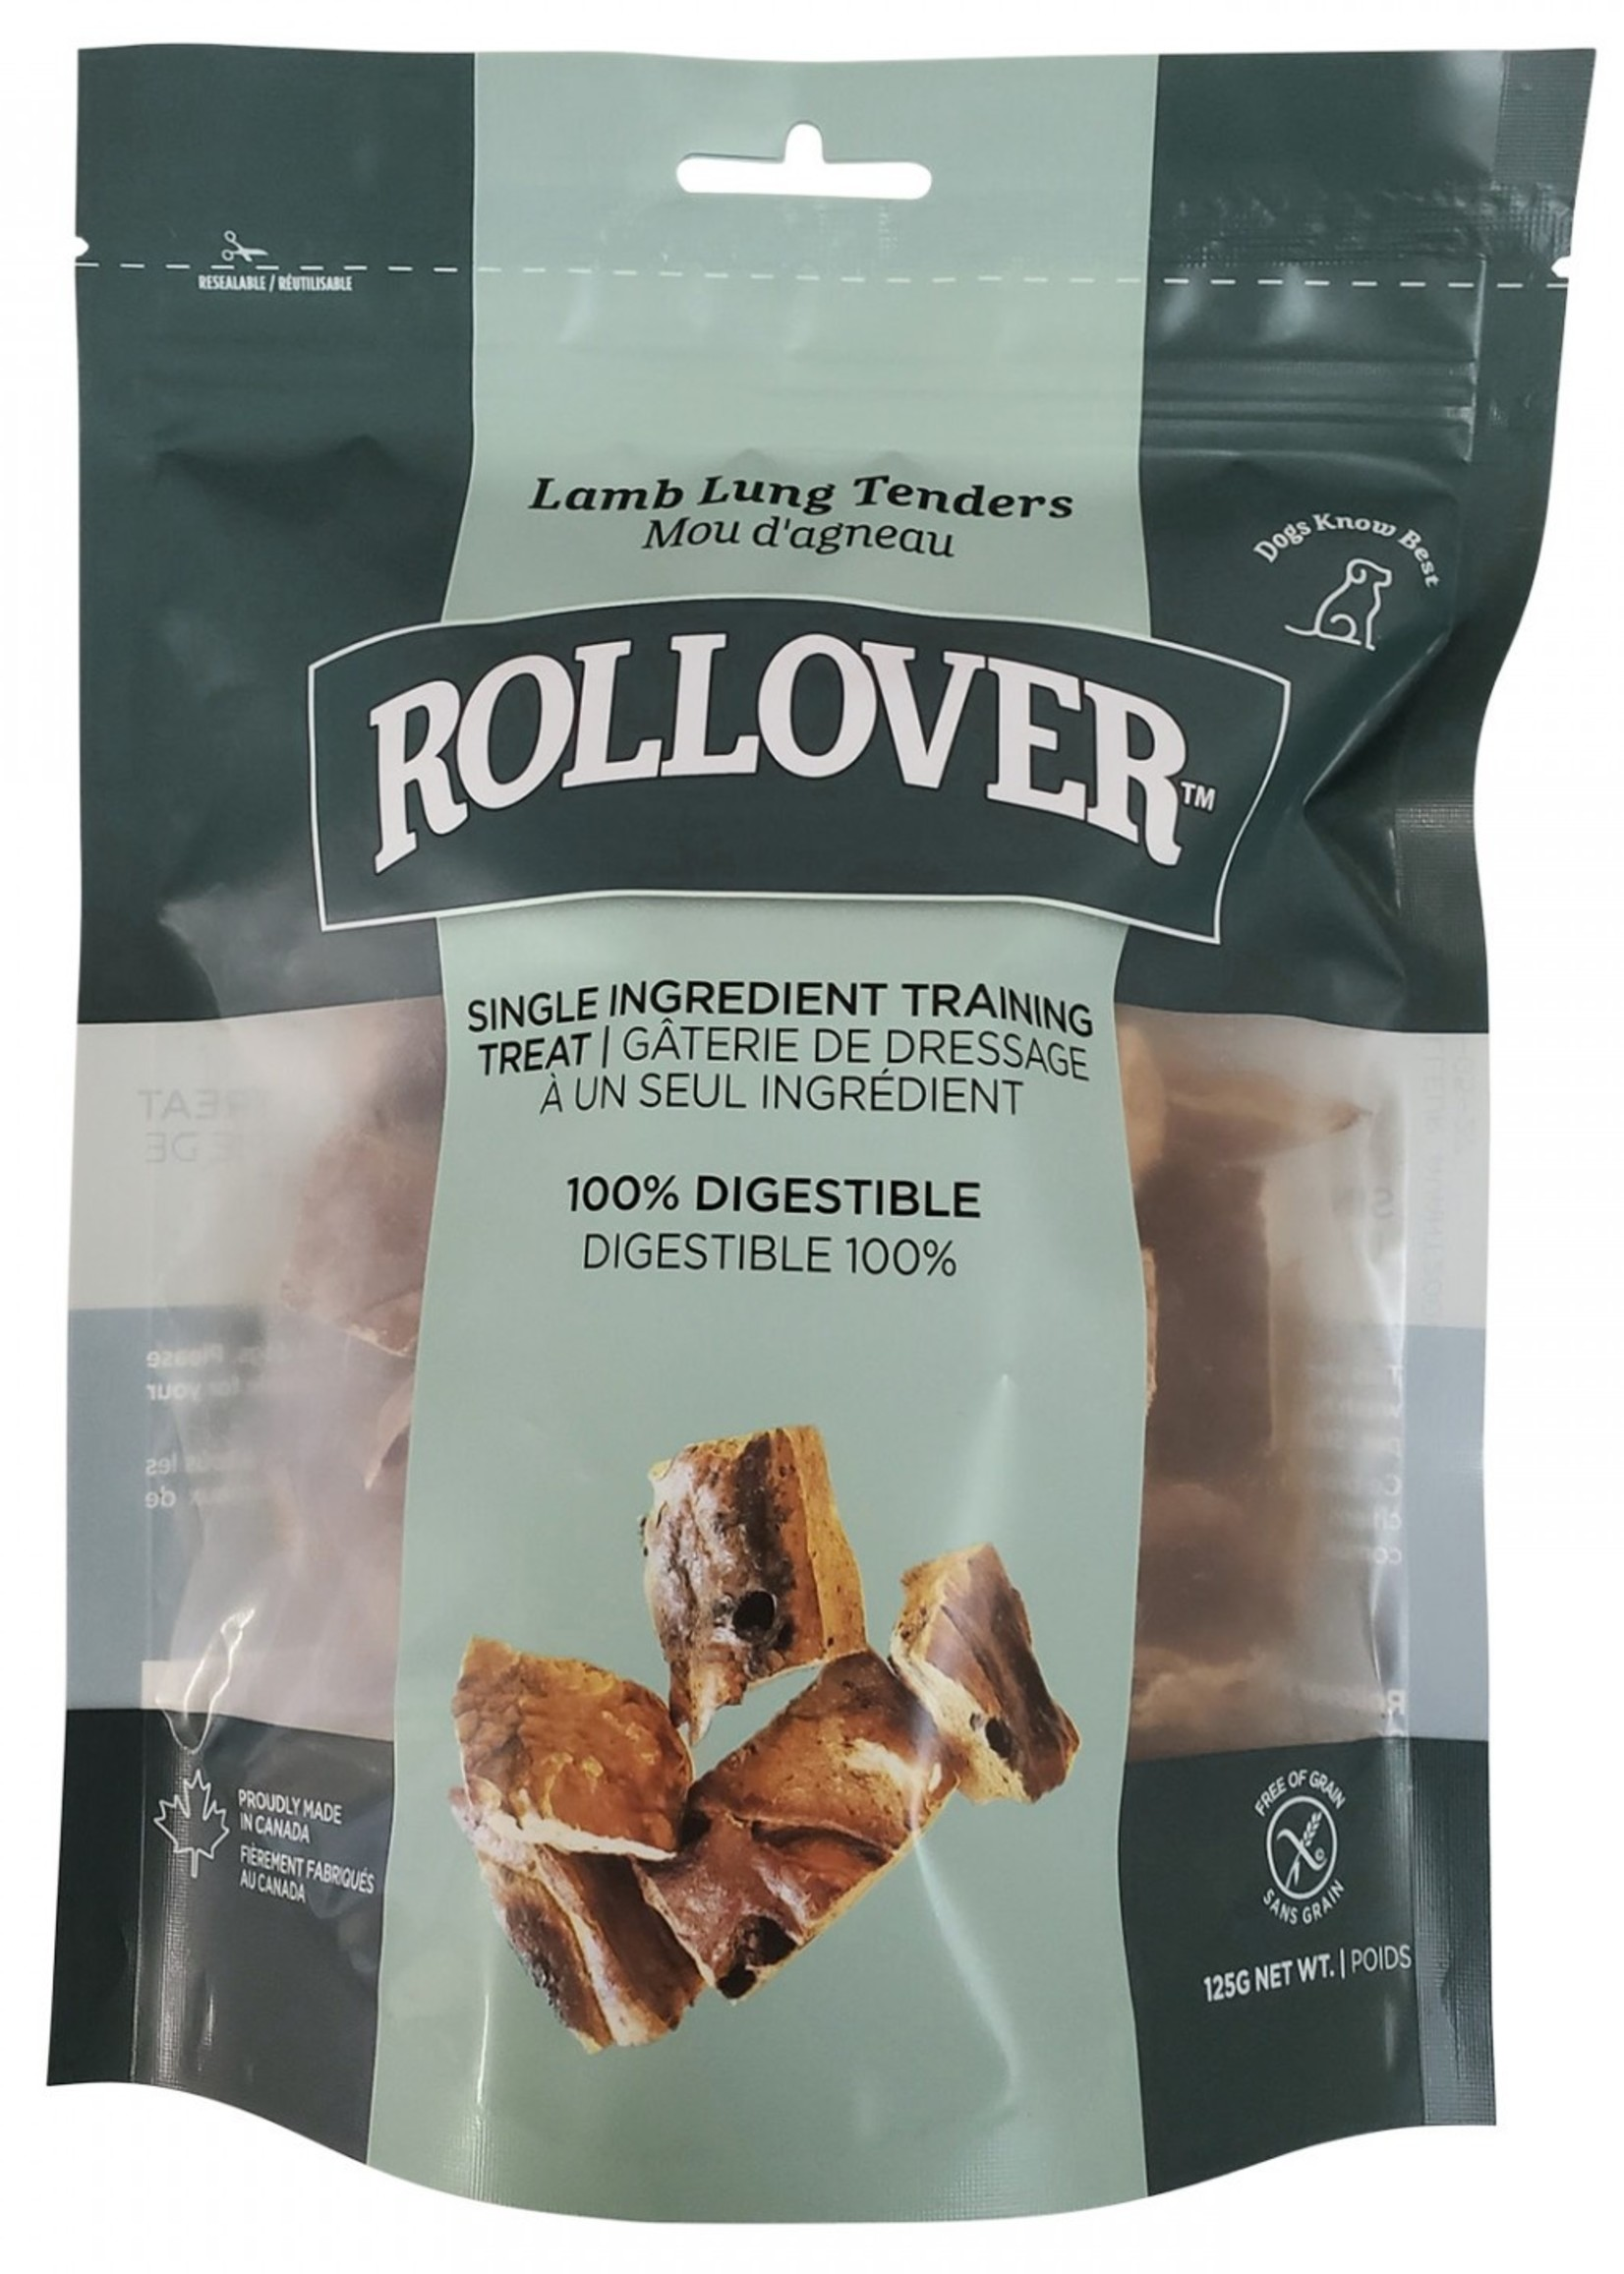 Rollover™ Rollover Lamb Lung Tenders 125g